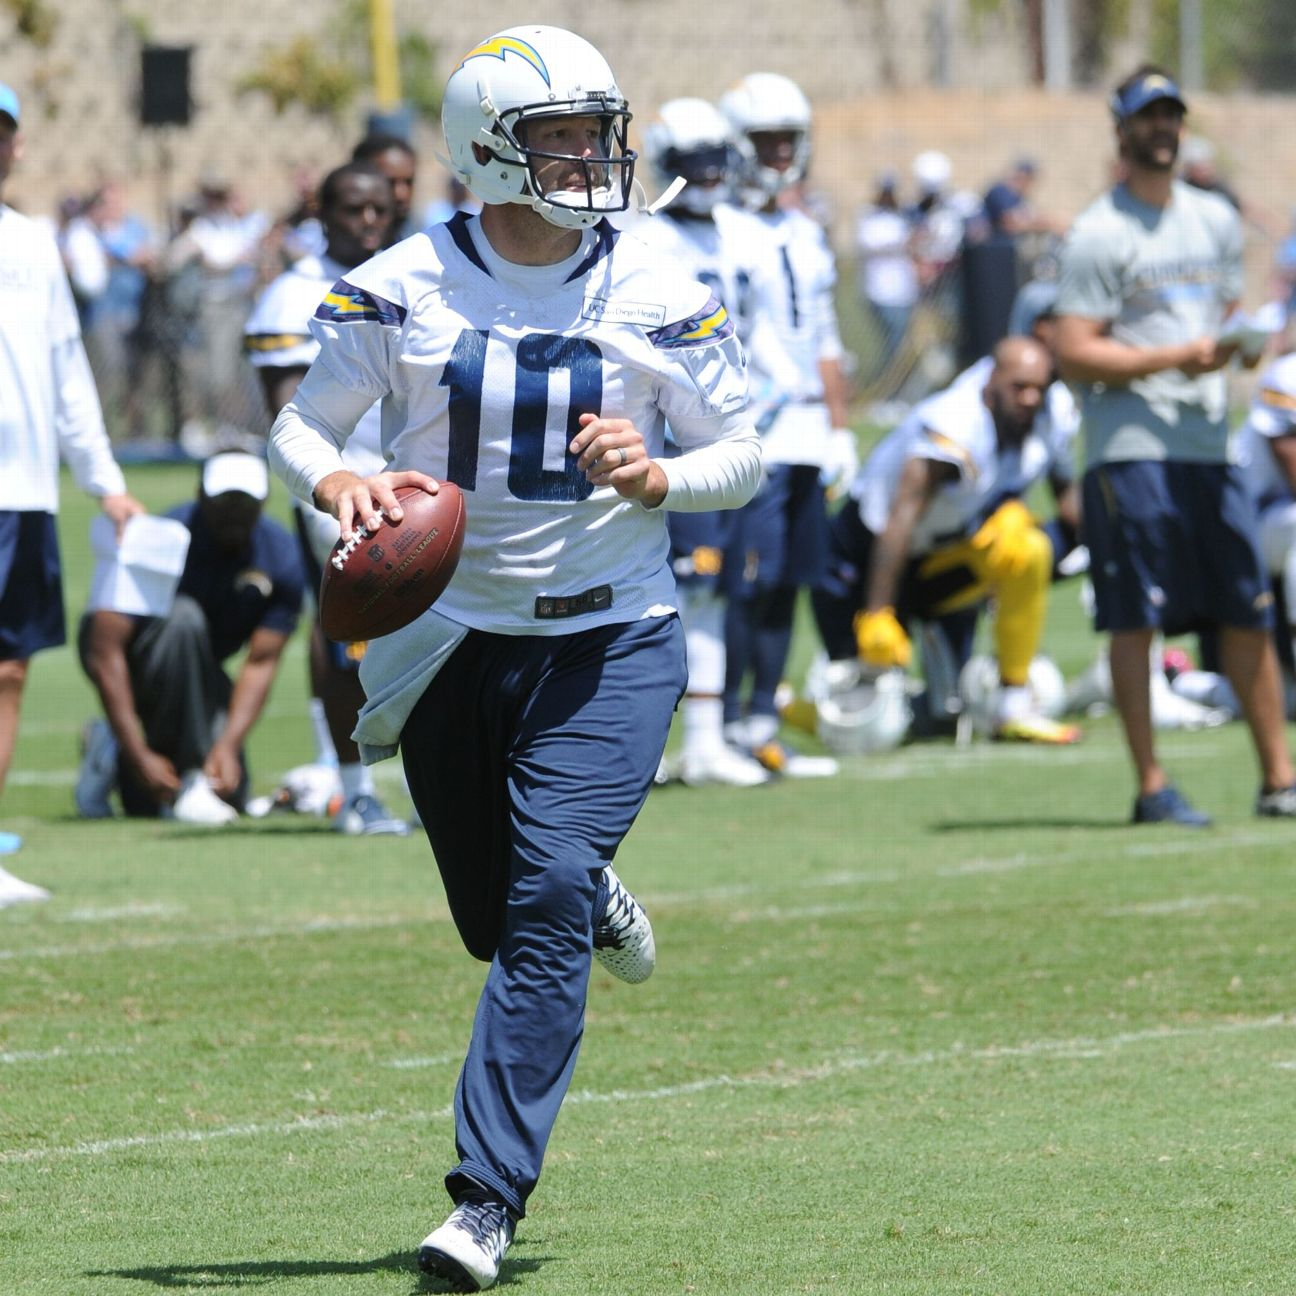 San Diego Chargers Espn: Kellen Clemens In Lead For San Diego Chargers' No. 2 QB